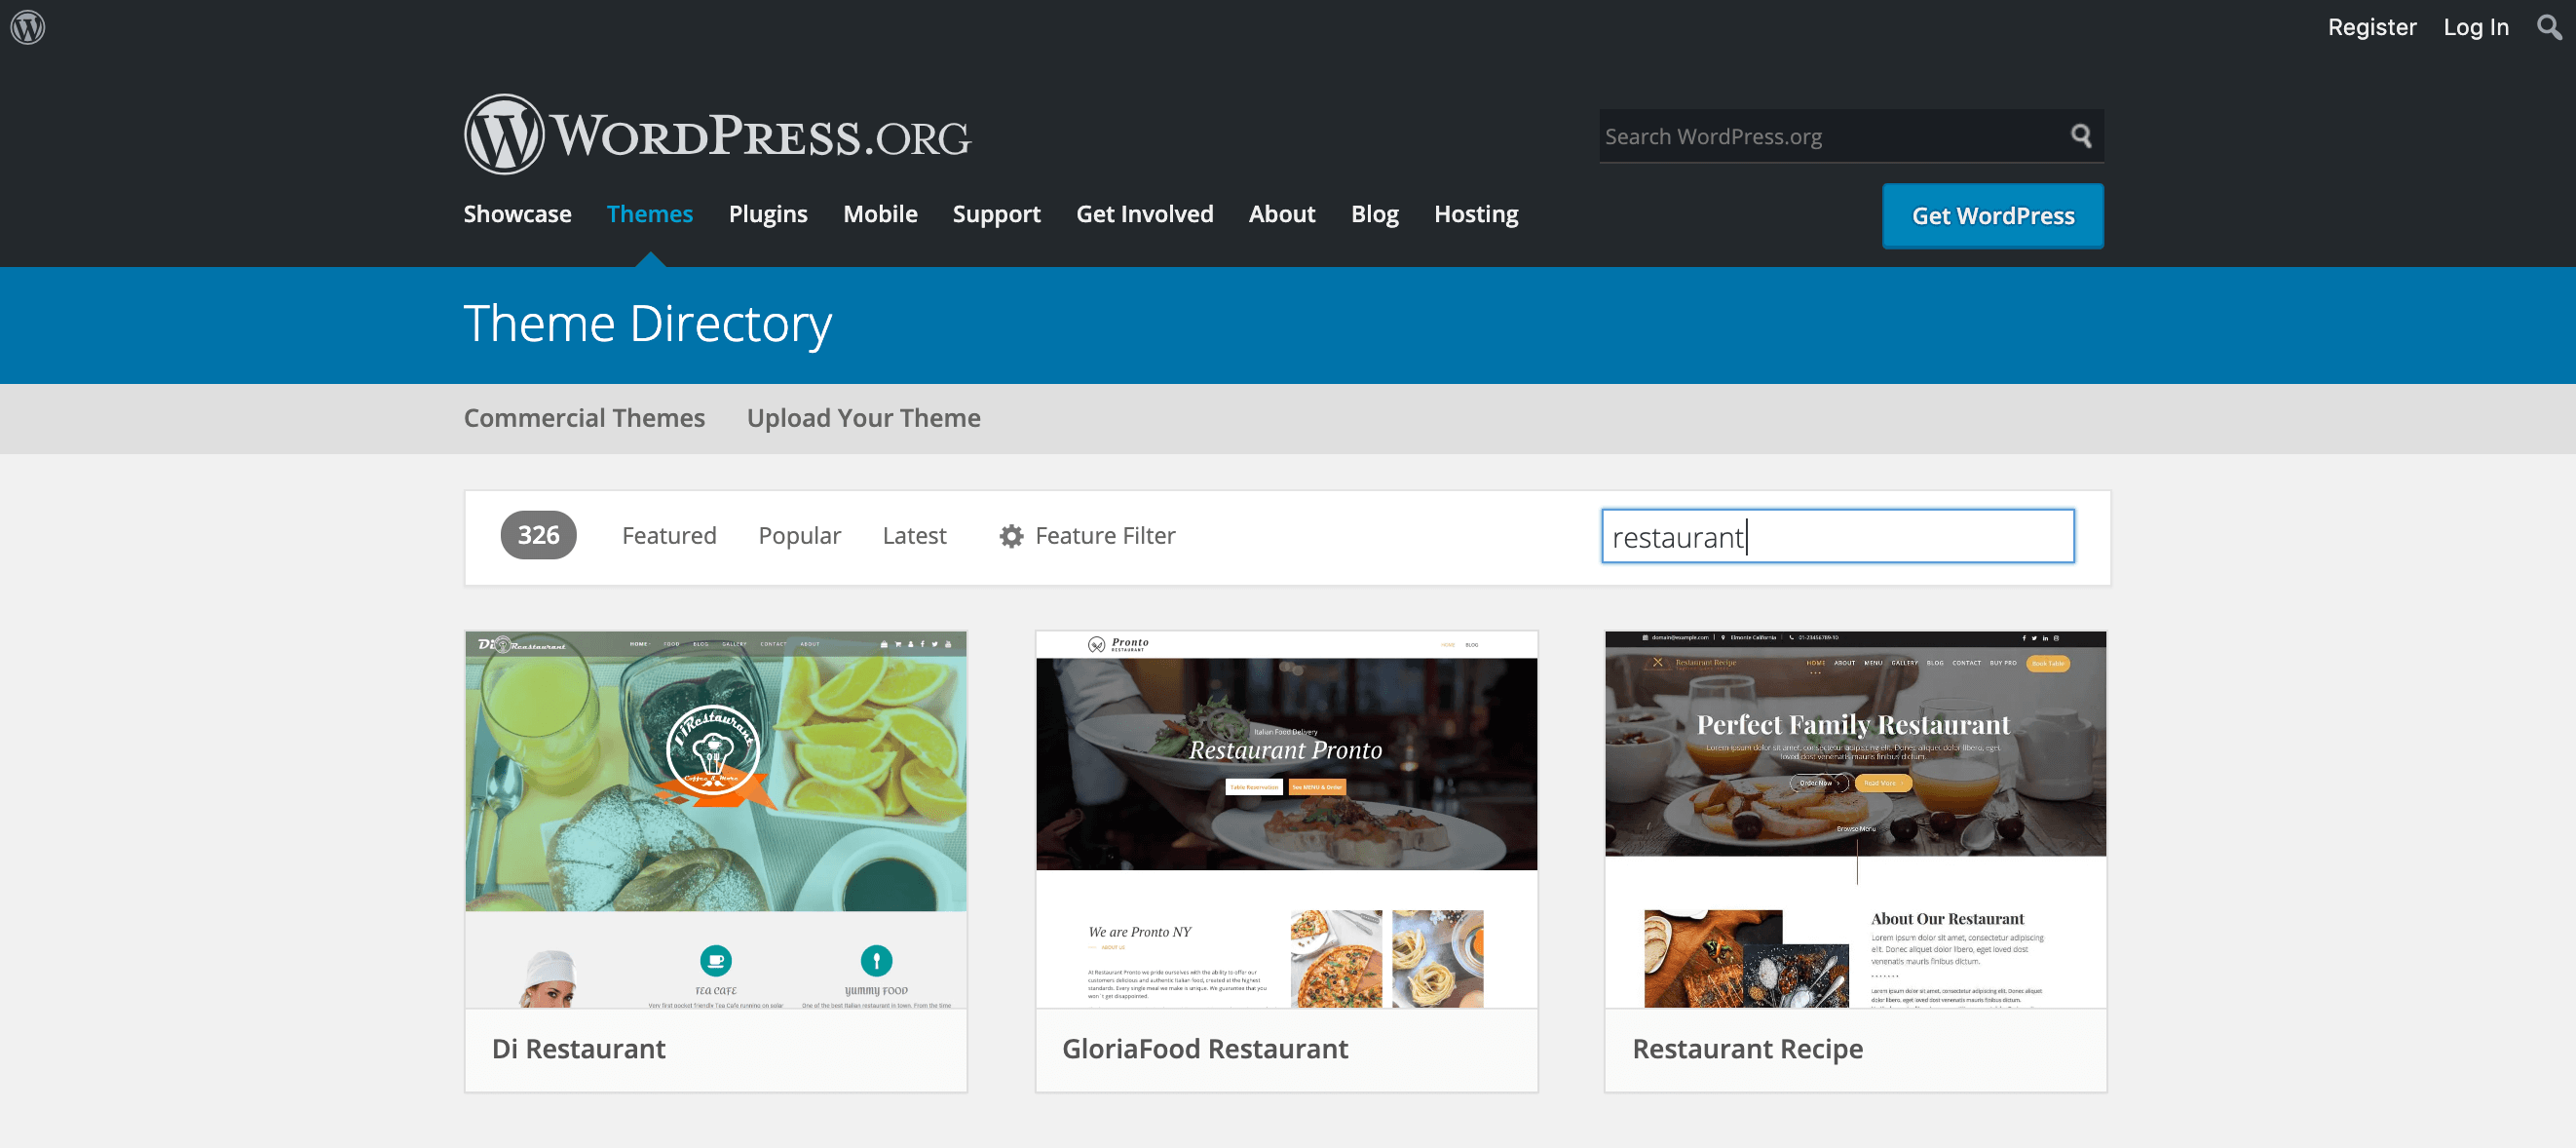 Restaurant themes in the WordPress Theme Directory.